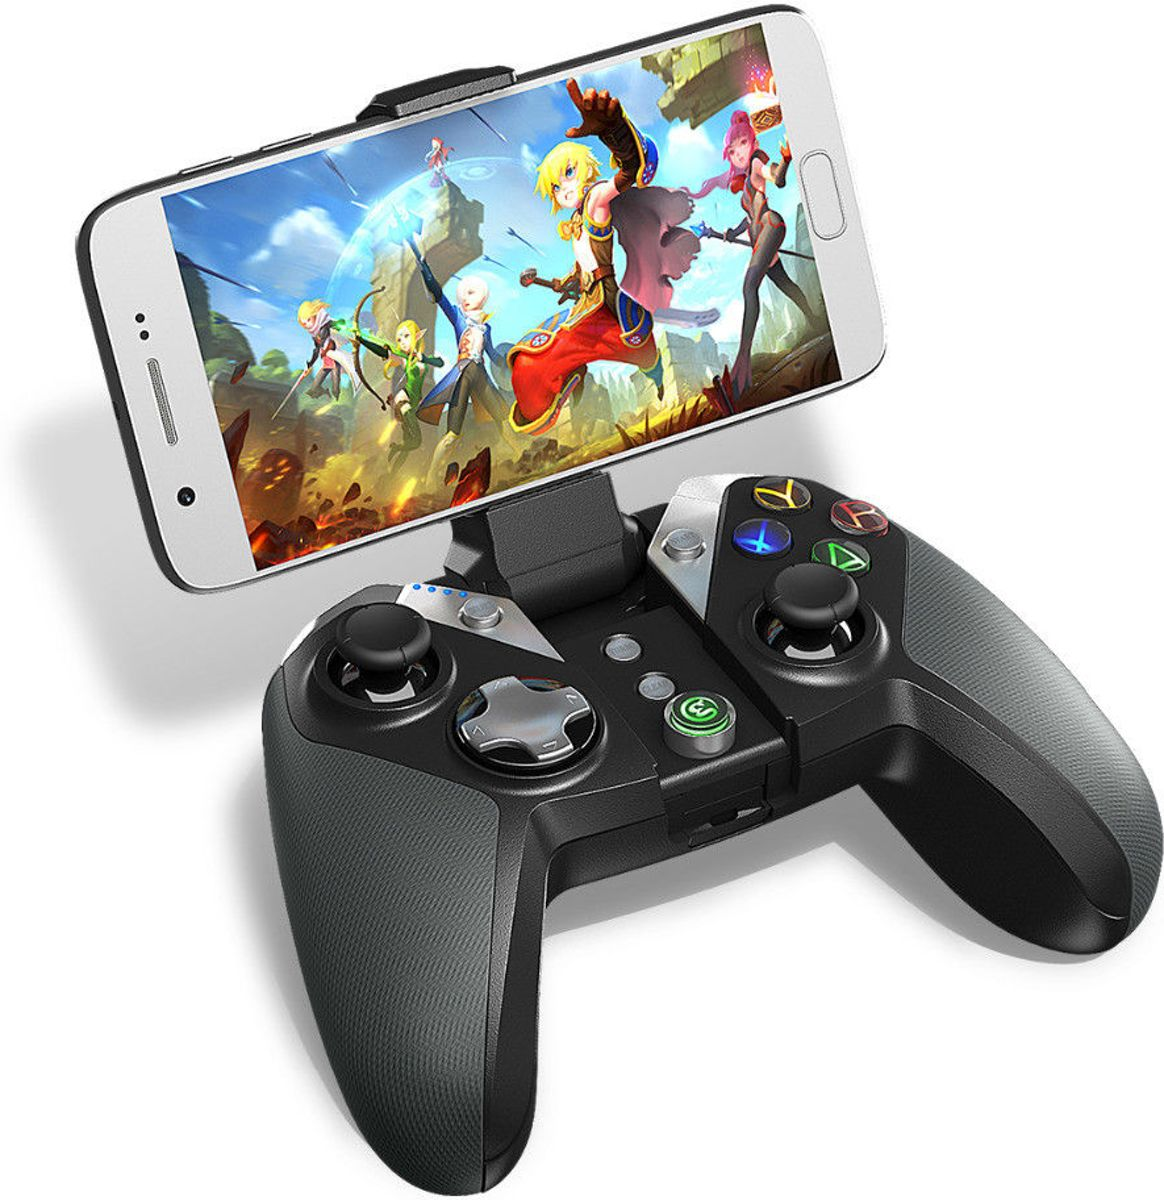 GameSir G4S Premium   | Wifi & Bluetooth | Naast smartphone o.a. geschikt voor PC/Tablet/Android TV | PUBG - Overwatch - Fortnite - FPS